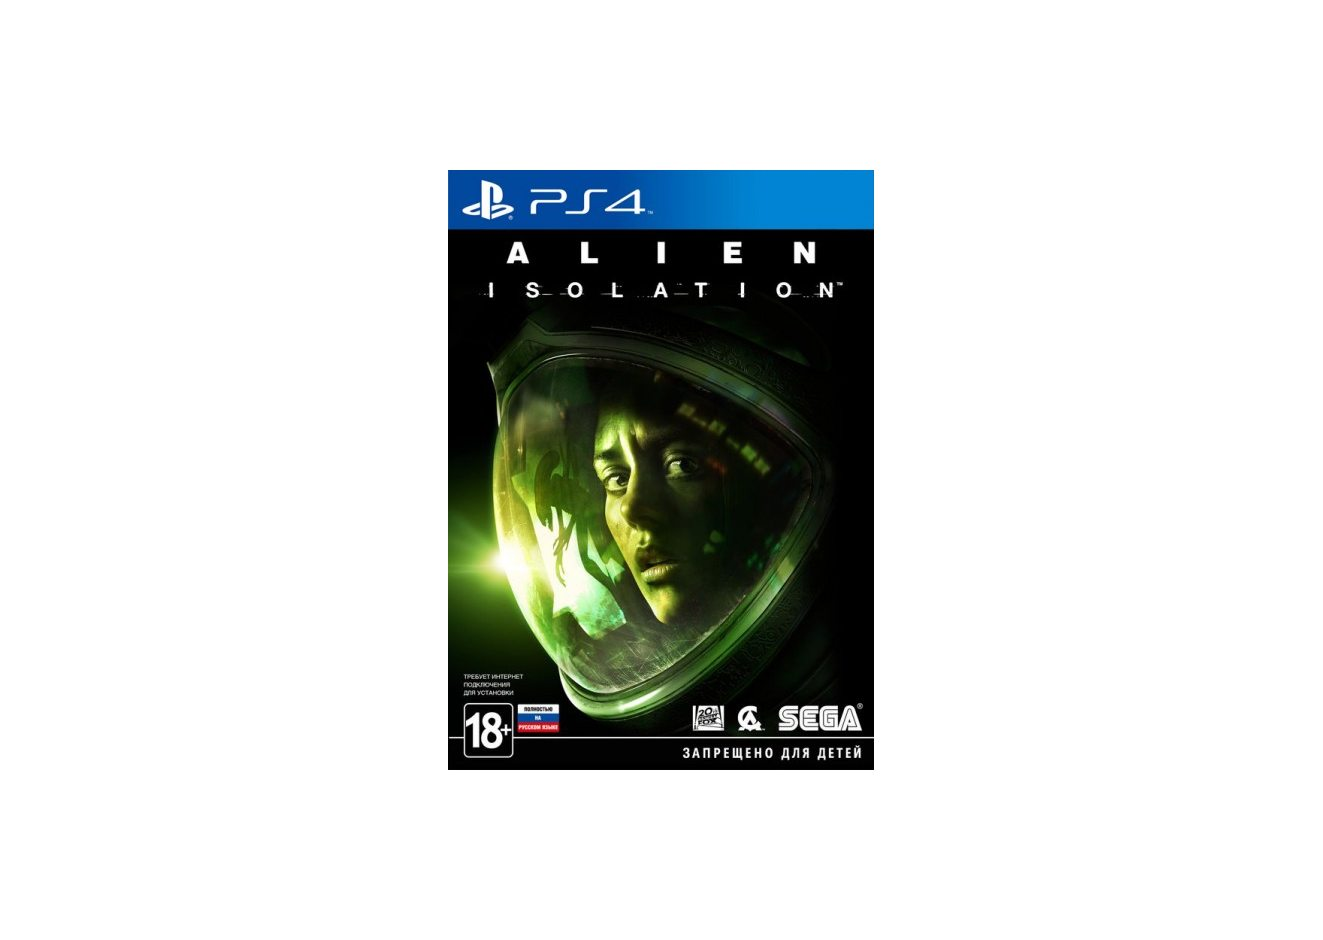 PS 4 Alien Isolation PS 4